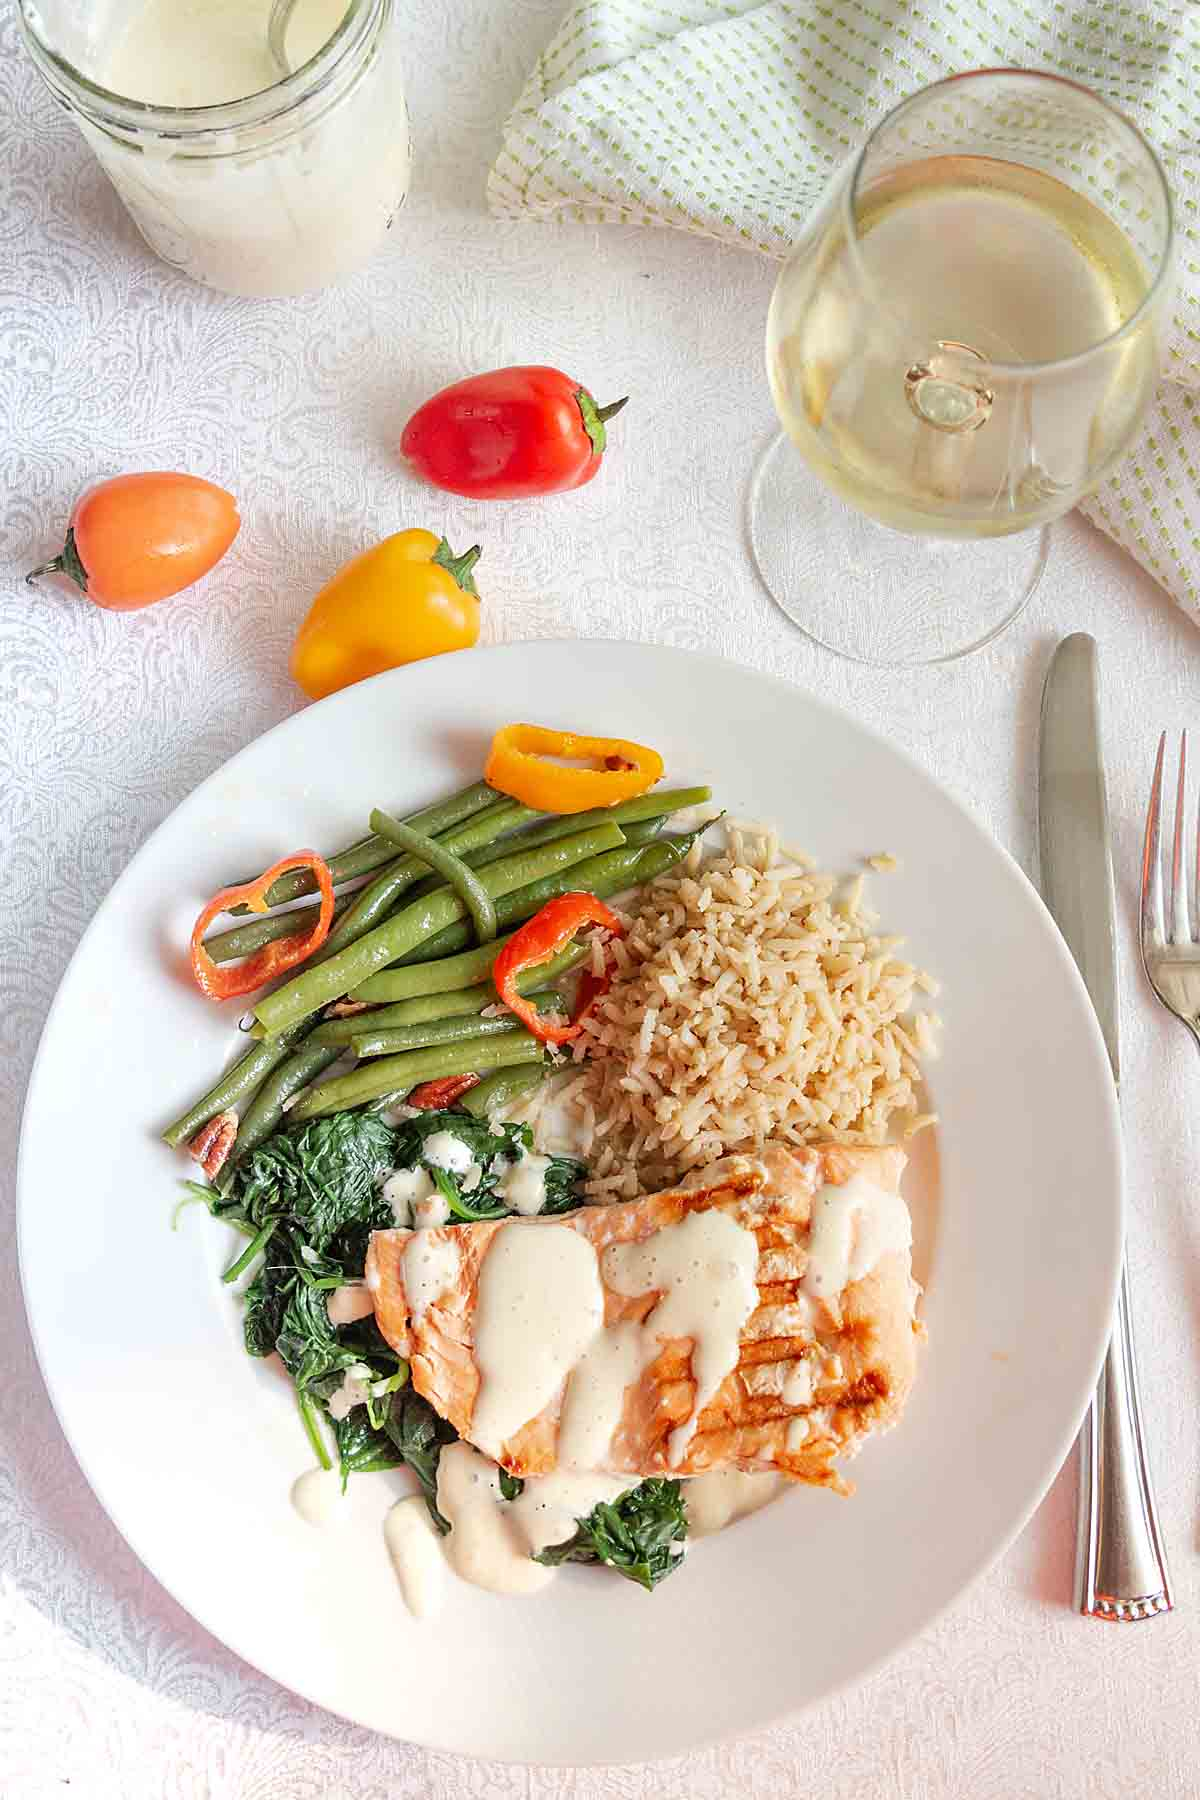 With steamed spinach and healthy salmon, all topped with blender hollandaise, Salmon Florentine is a quick, easy and tasty dinner.